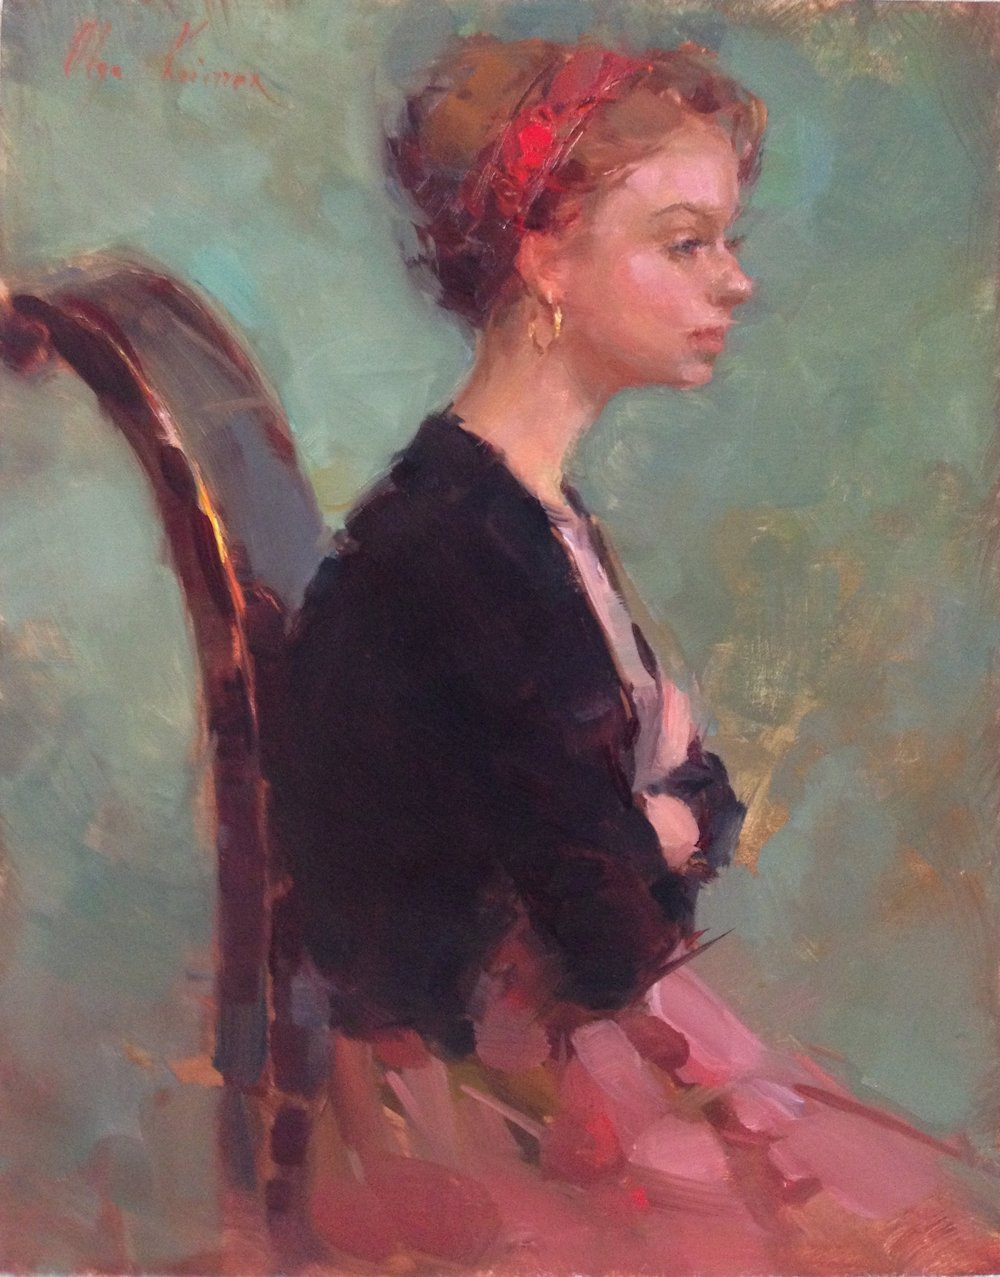 Profile - oil, 11x14Available through Vanessa Rothe Fine Art